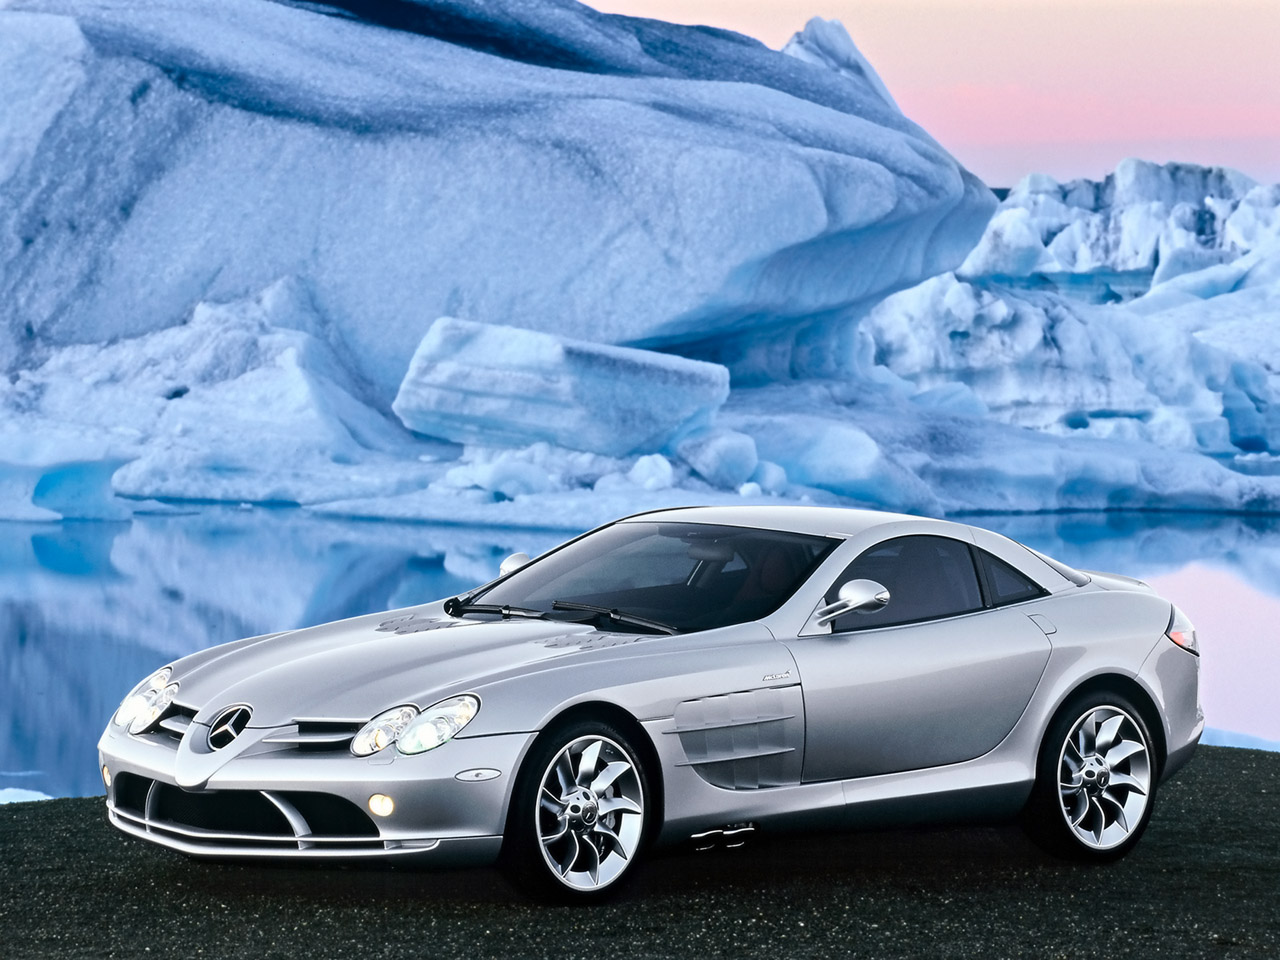 World of cars mercedes benz slr image for Mercedes benz cars images